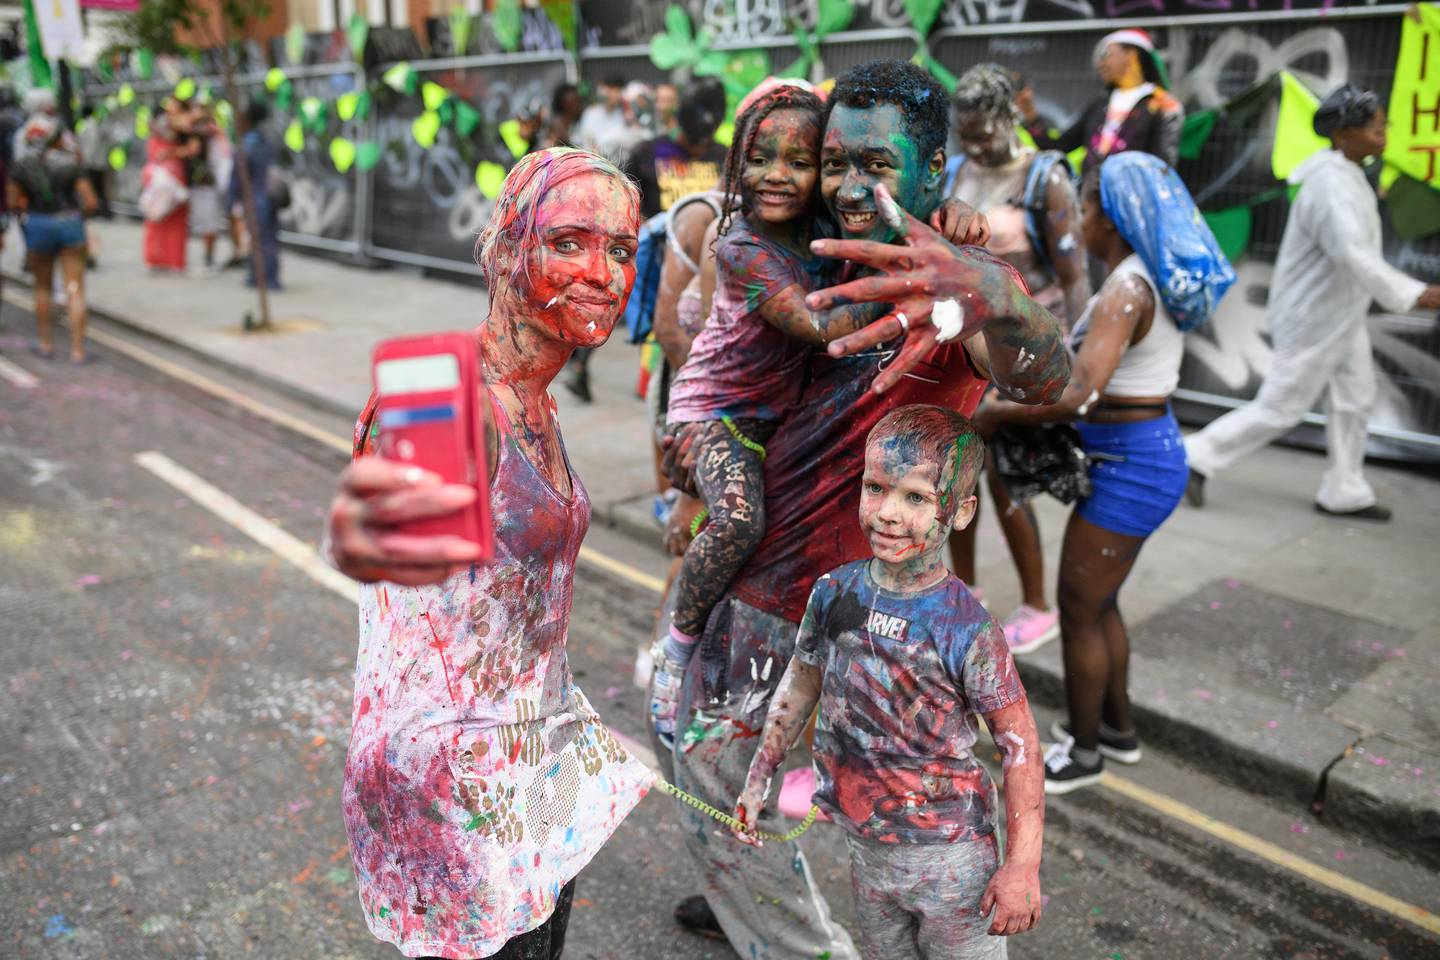 """LONDON, ENGLAND - AUGUST 27:  Paint-covered revellers take part in the traditional """"J'ouvert"""" opening parade of the Notting Hill carnival on August 27, 2017 in London, England.  (Photo by Leon Neal/Getty Images)"""